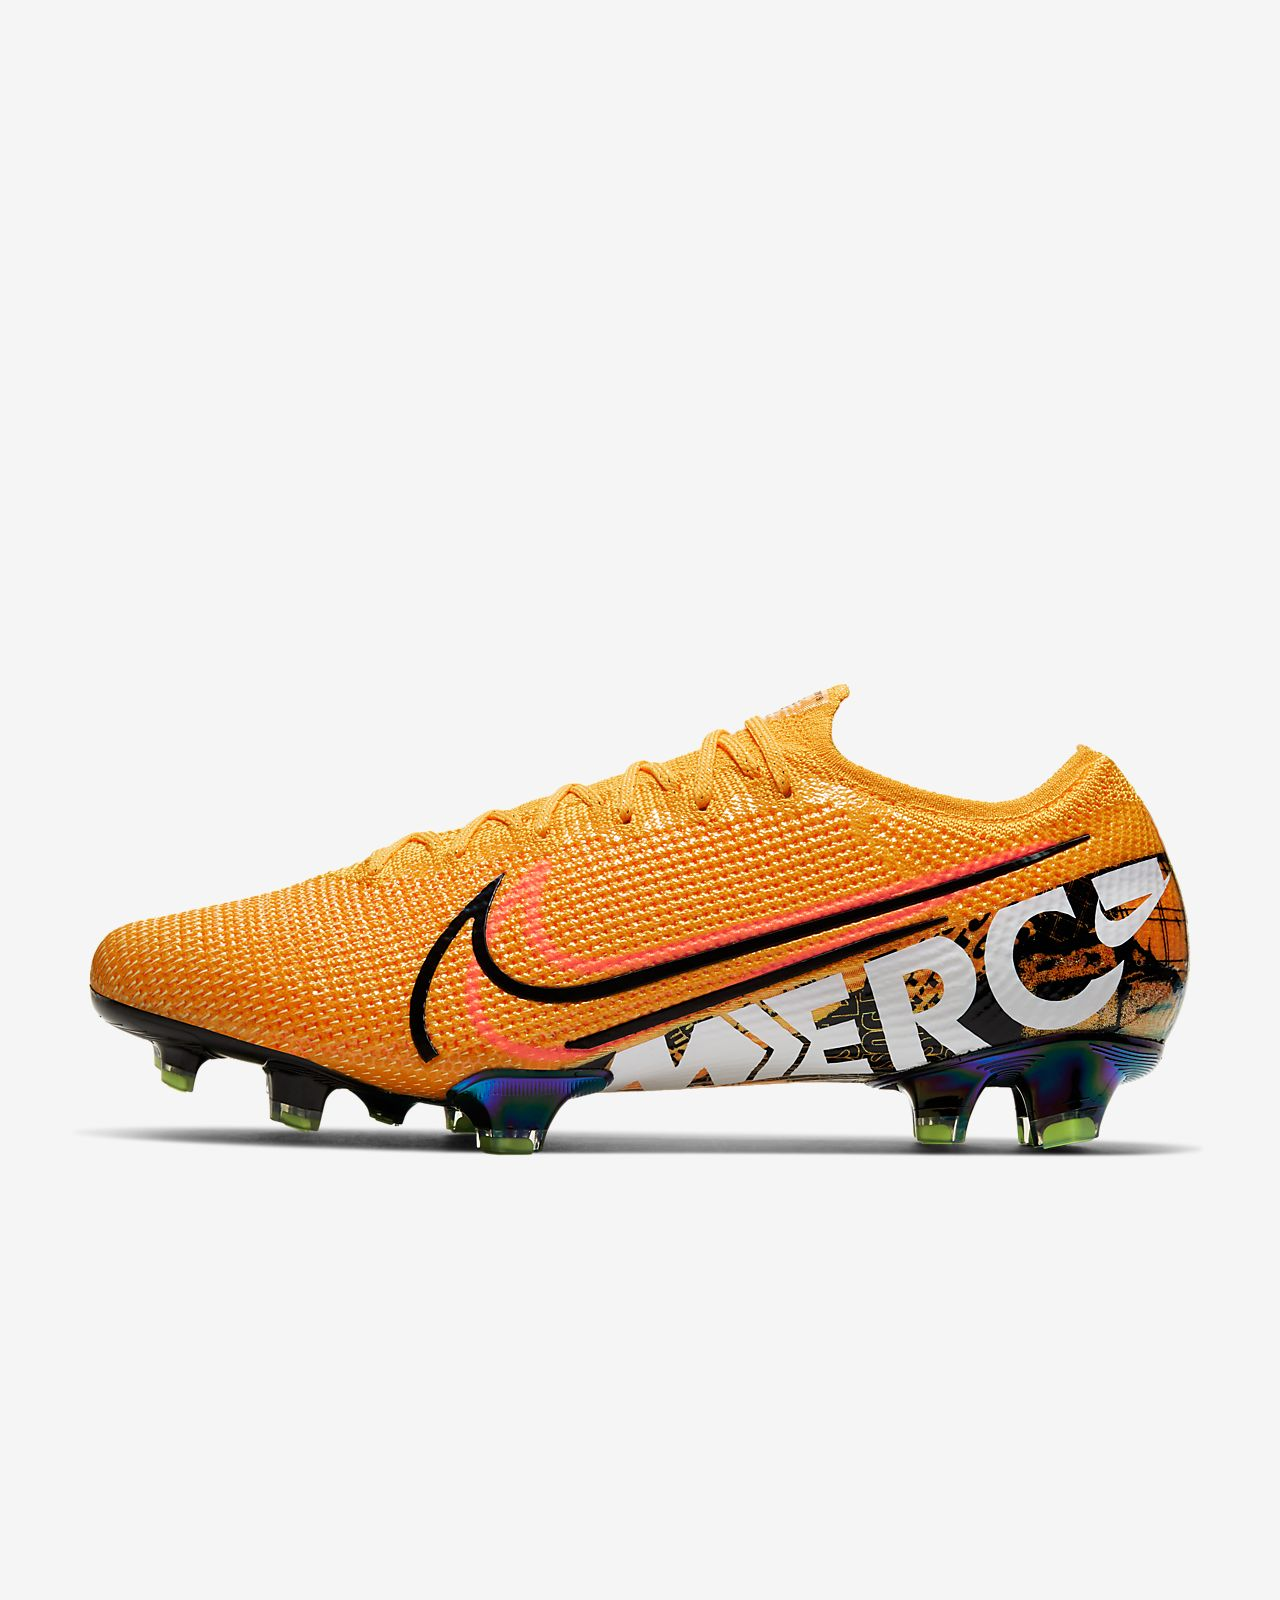 Nike Mercurial Vapor 13 Elite SE FG Firm-Ground Football Boot